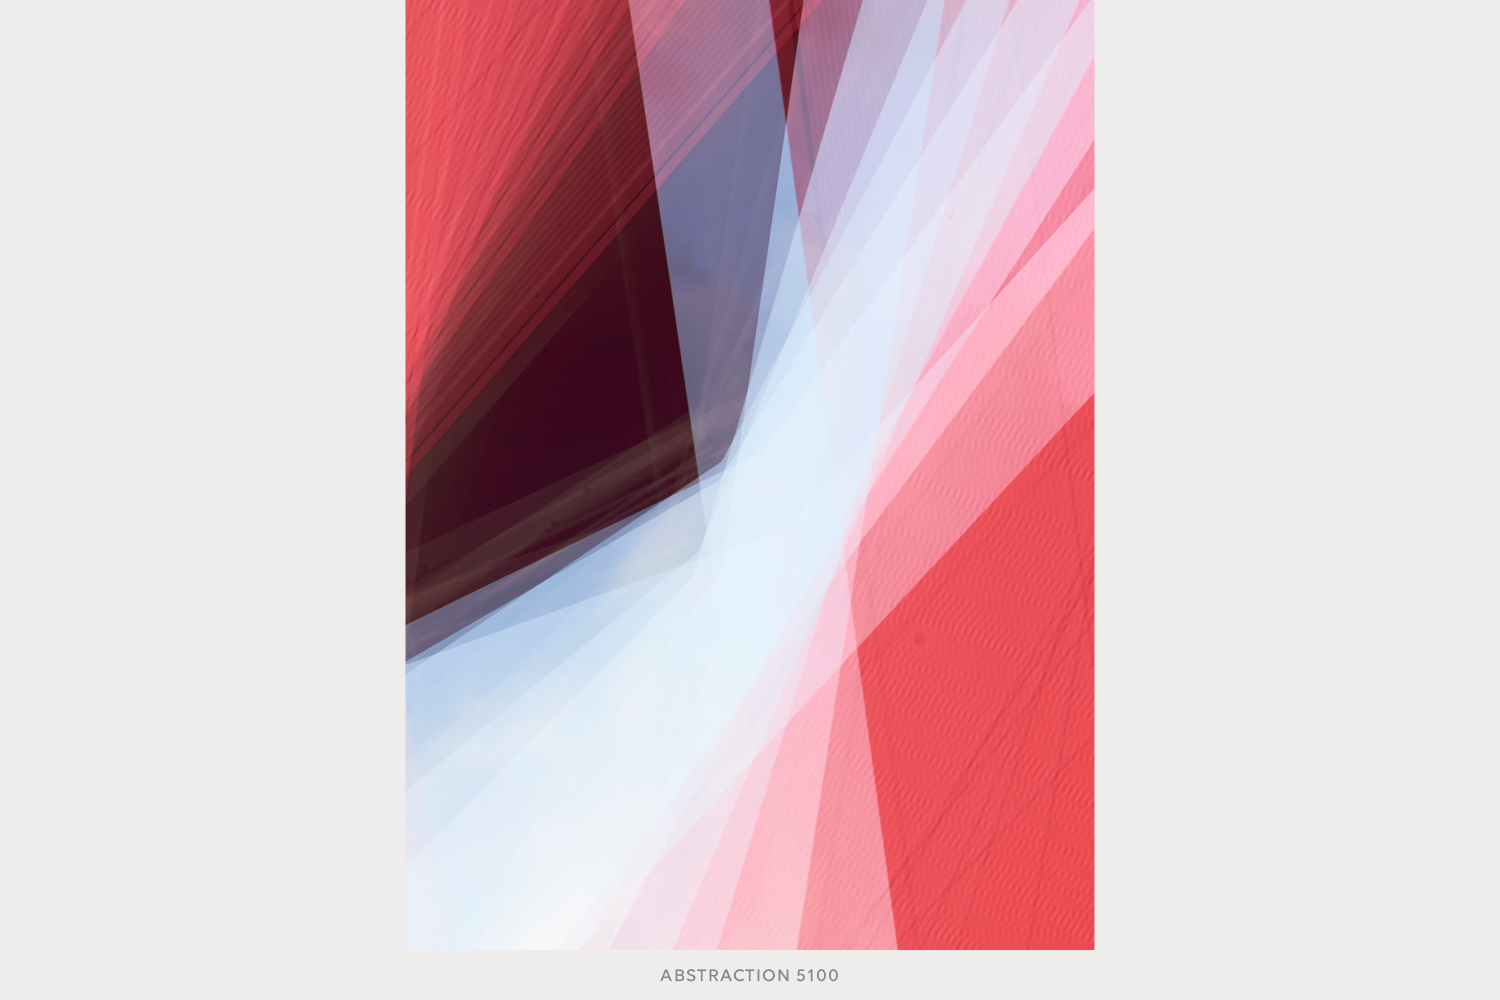 abstraction30.jpg